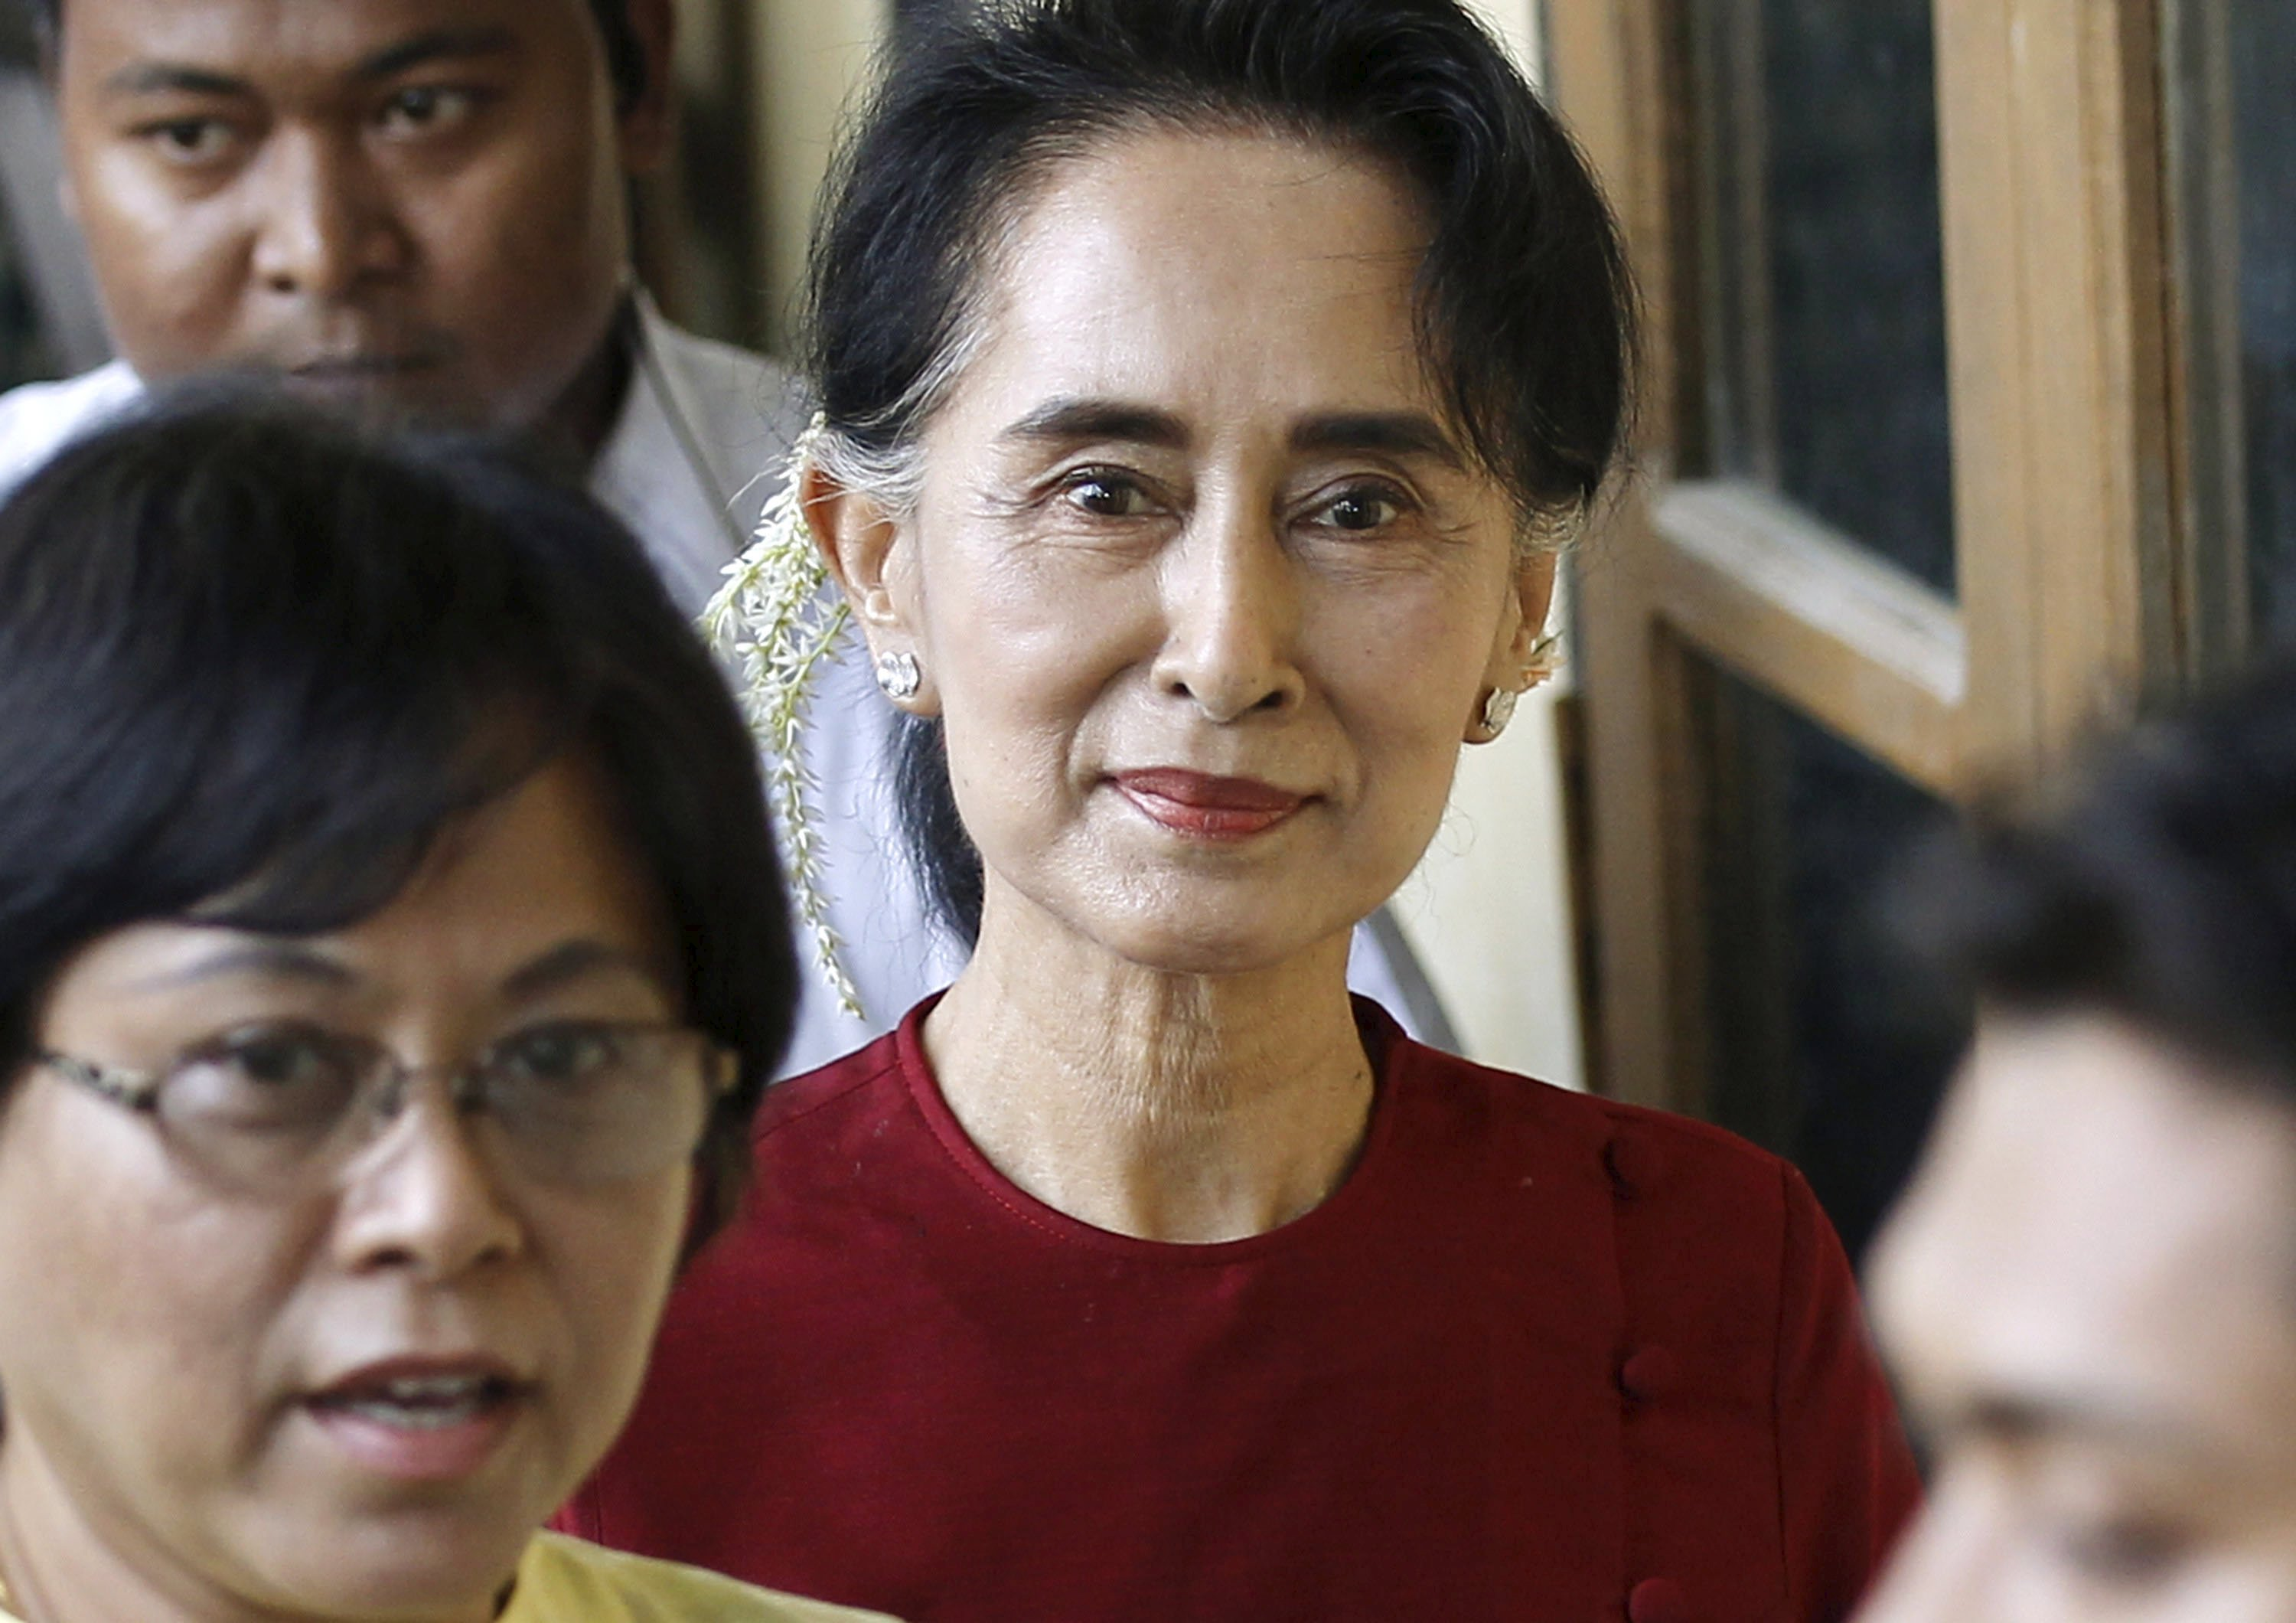 Myanmar pro-democracy leader Aung San Suu Kyi smiles at supporters as she visits poling stations at her constituency Kawhmu township November 8, 2015. Photo: Reuters